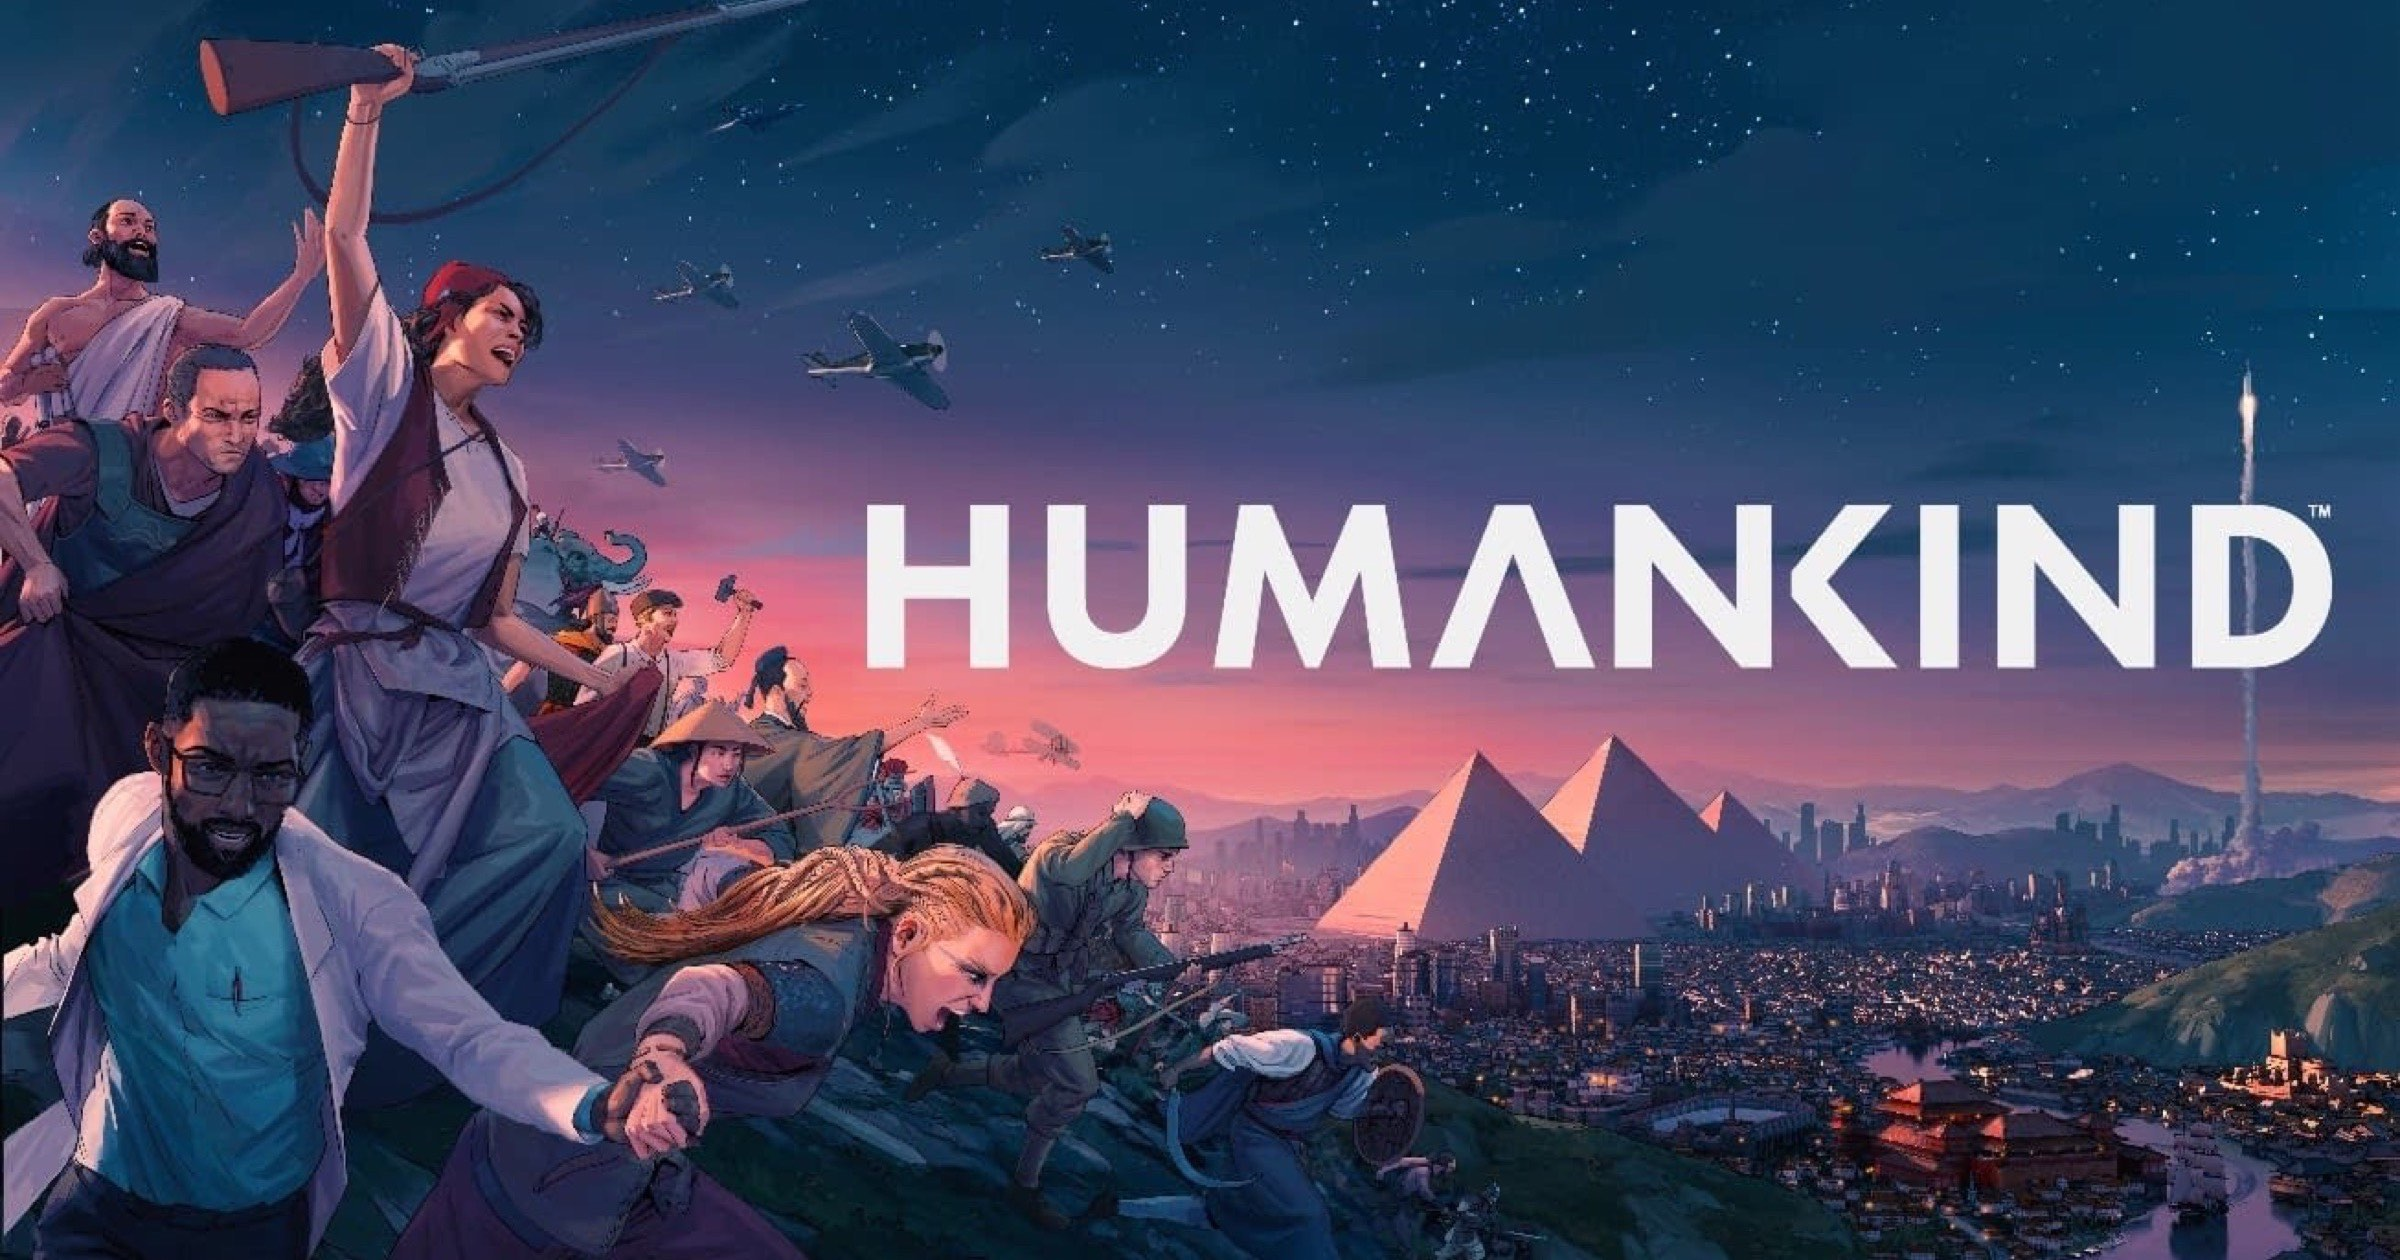 New Game 'Humankind' Offers a Civilization-Like Experience